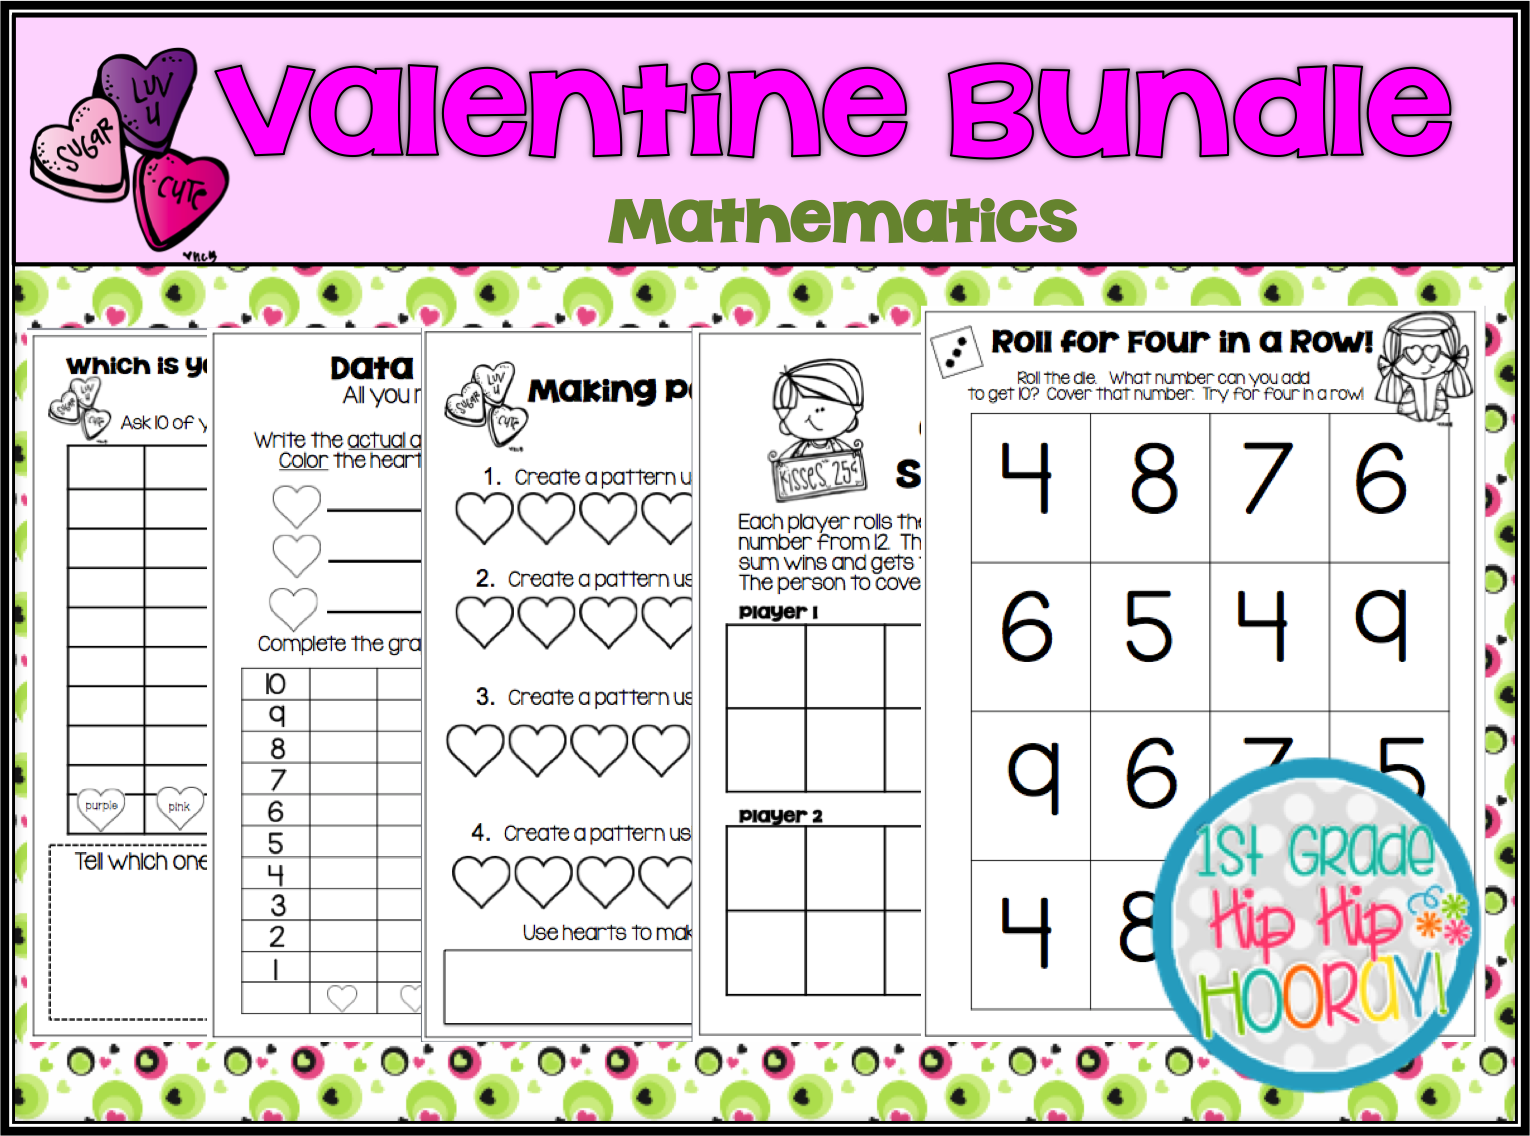 1st Grade Hip Hip Hooray Valentine S Day Is On The Way